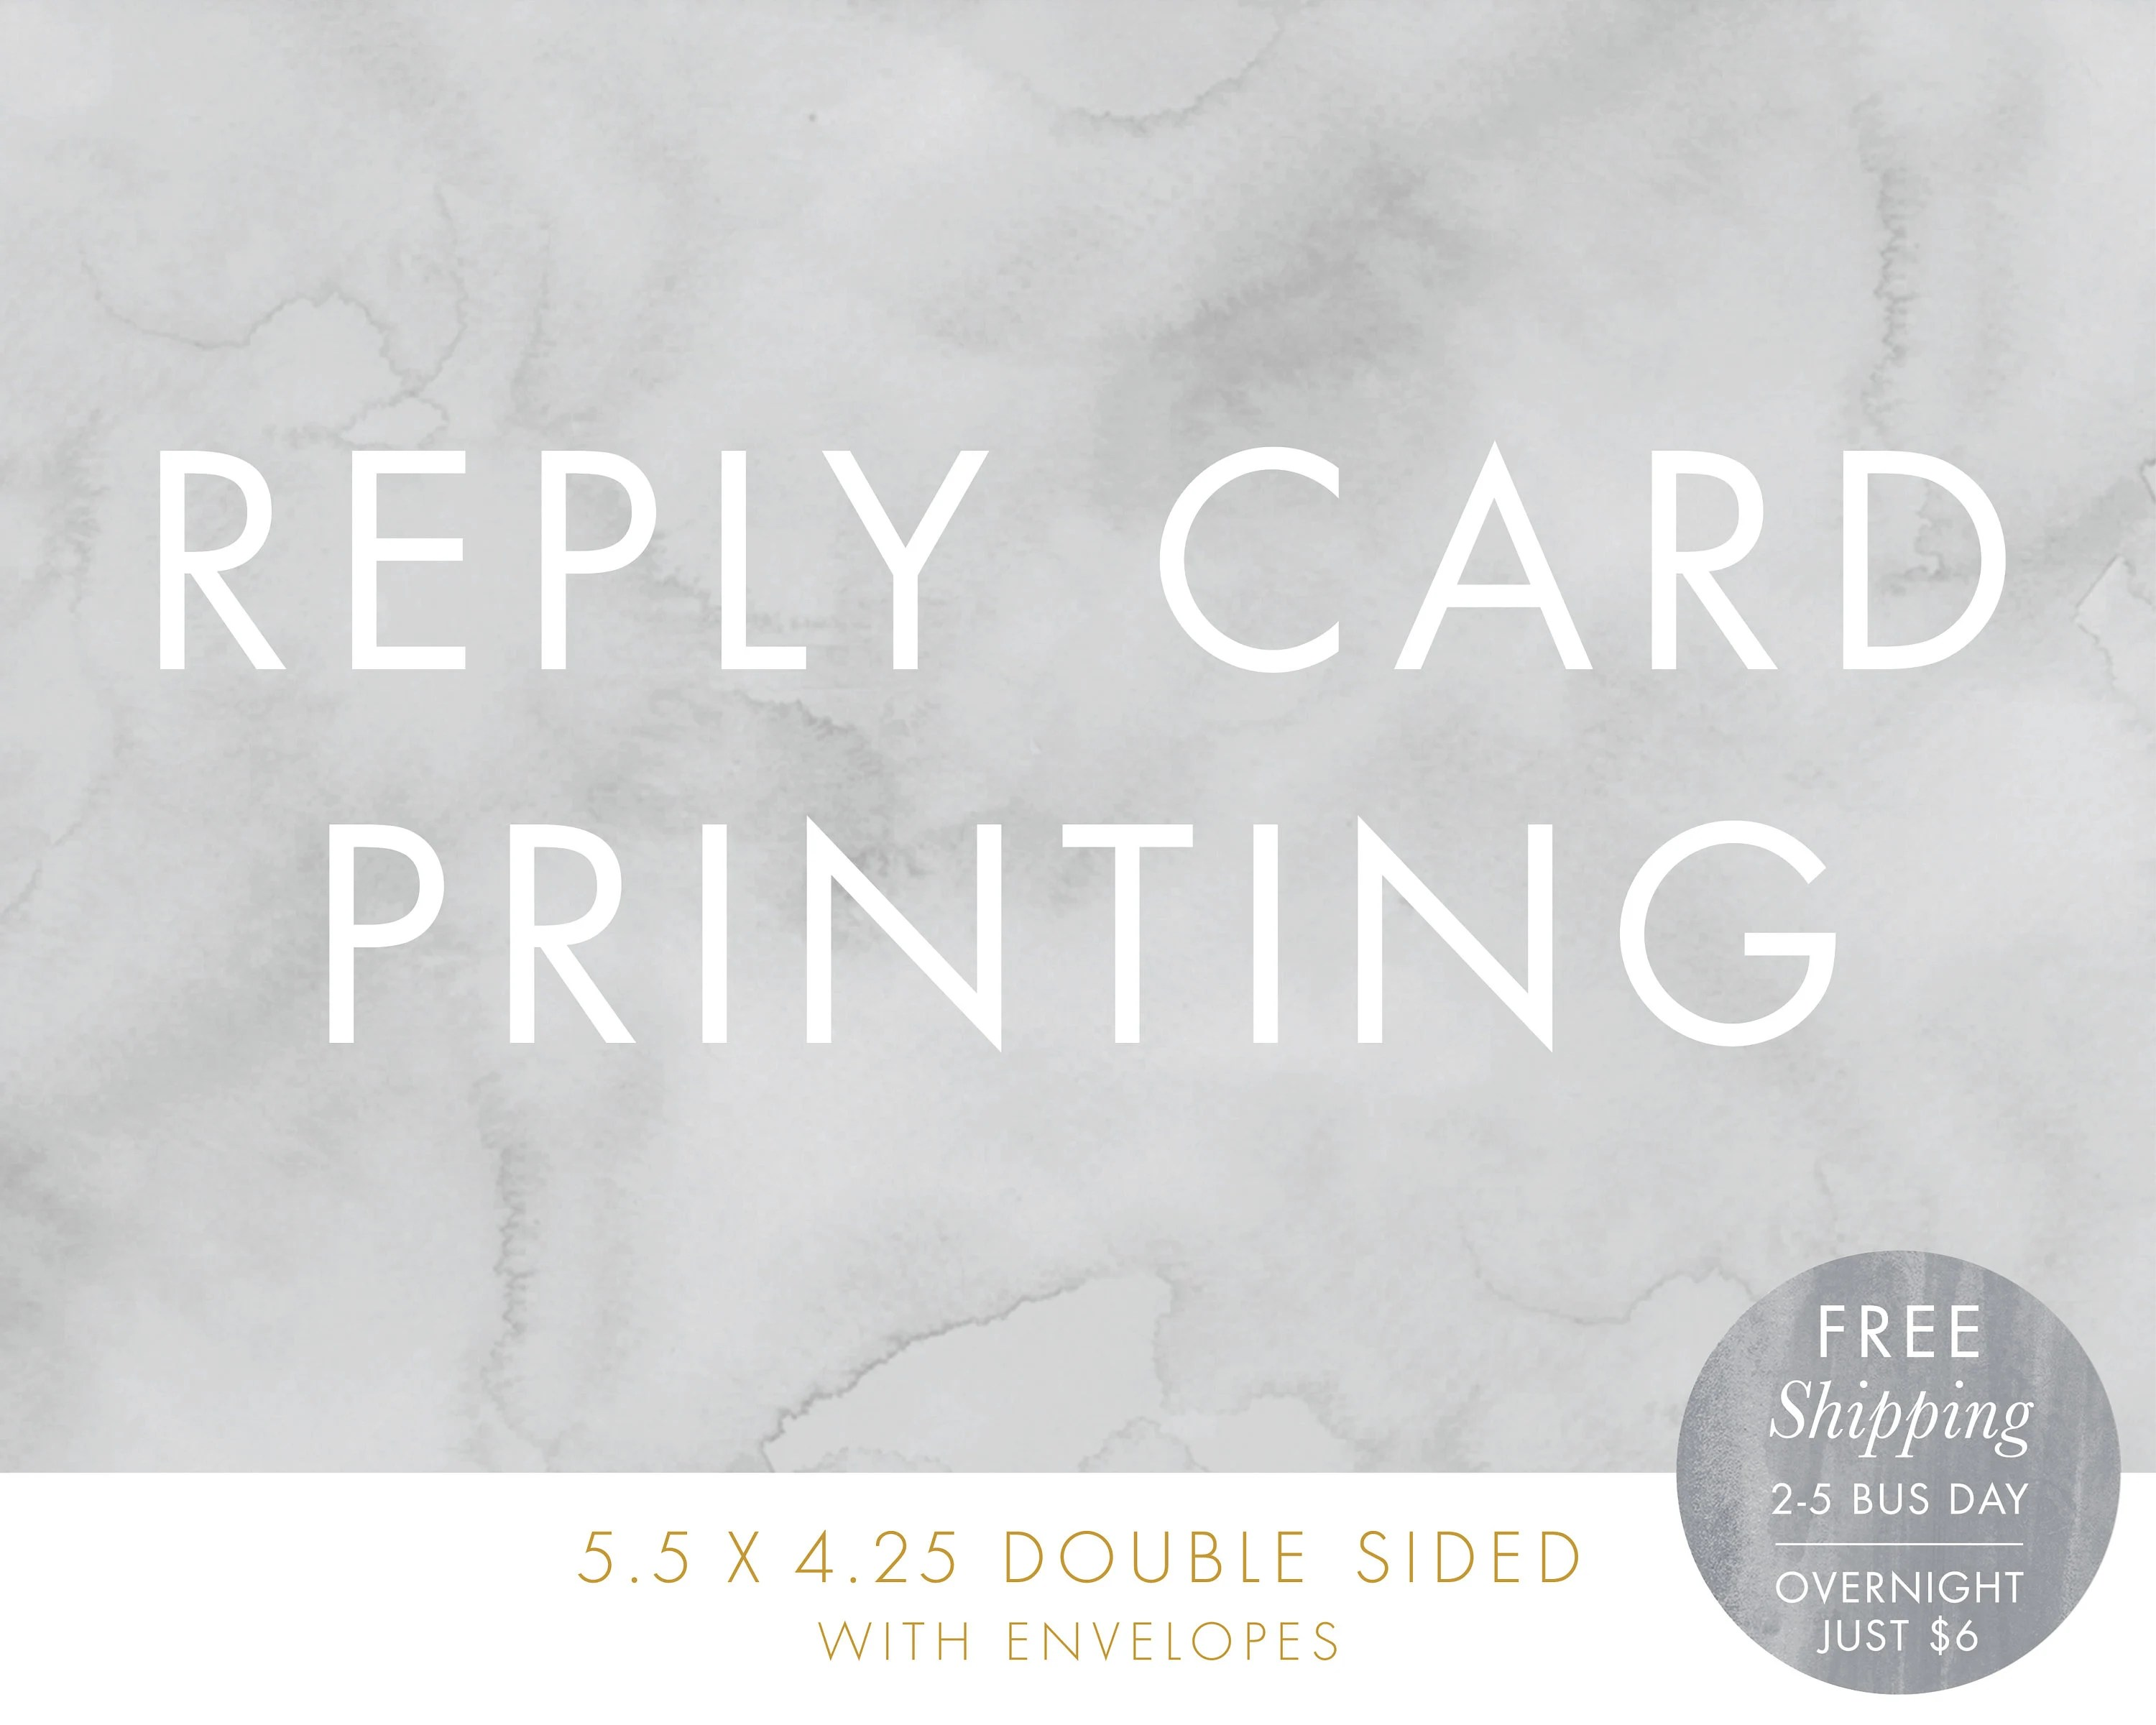 Reply Card Printing Free Shipping 55x425 Double Sided RSVP Etsy